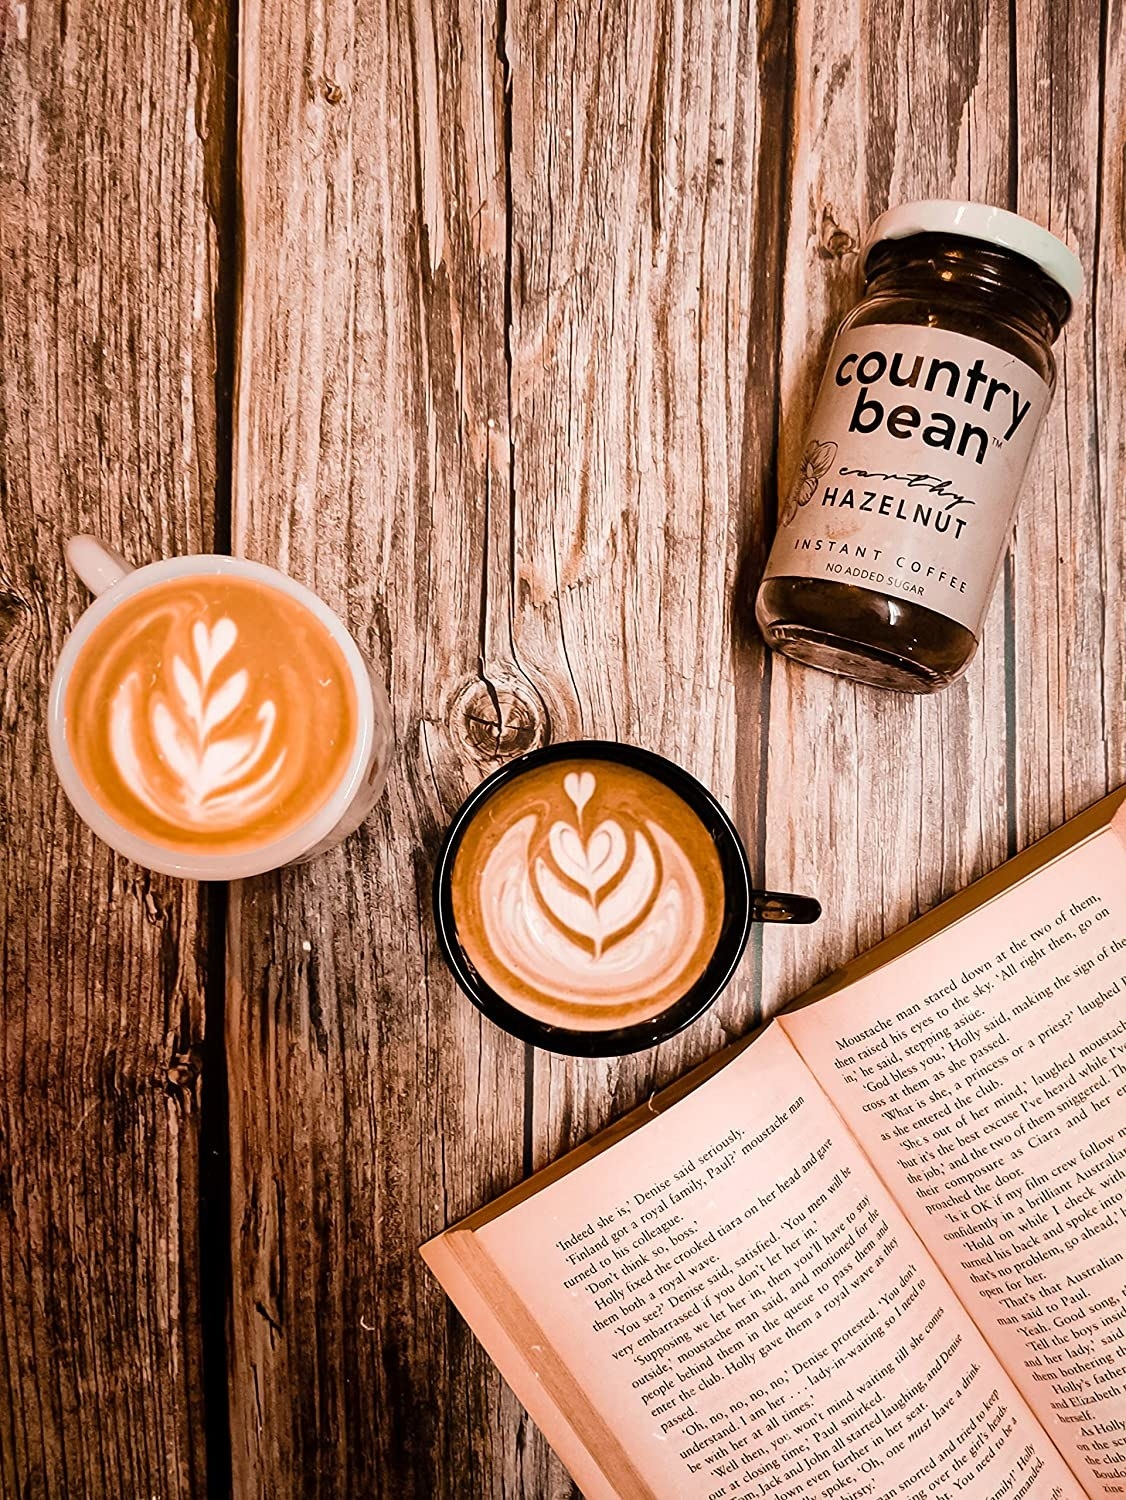 Two cups of coffee pictured with a book.